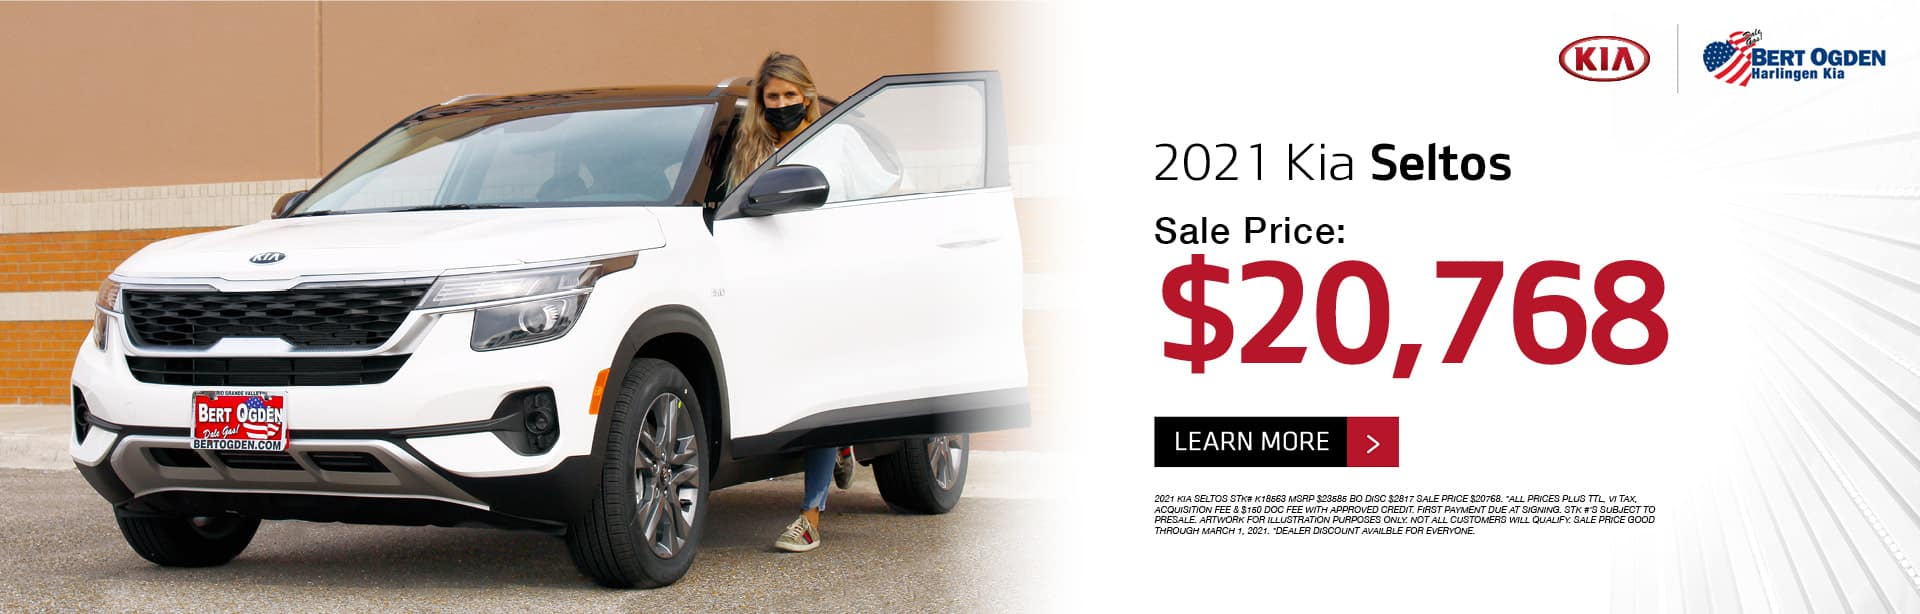 2021 Kia Seltos February 2021 Offer - Bert Ogden Harlingen Kia in Harlingen, Texas